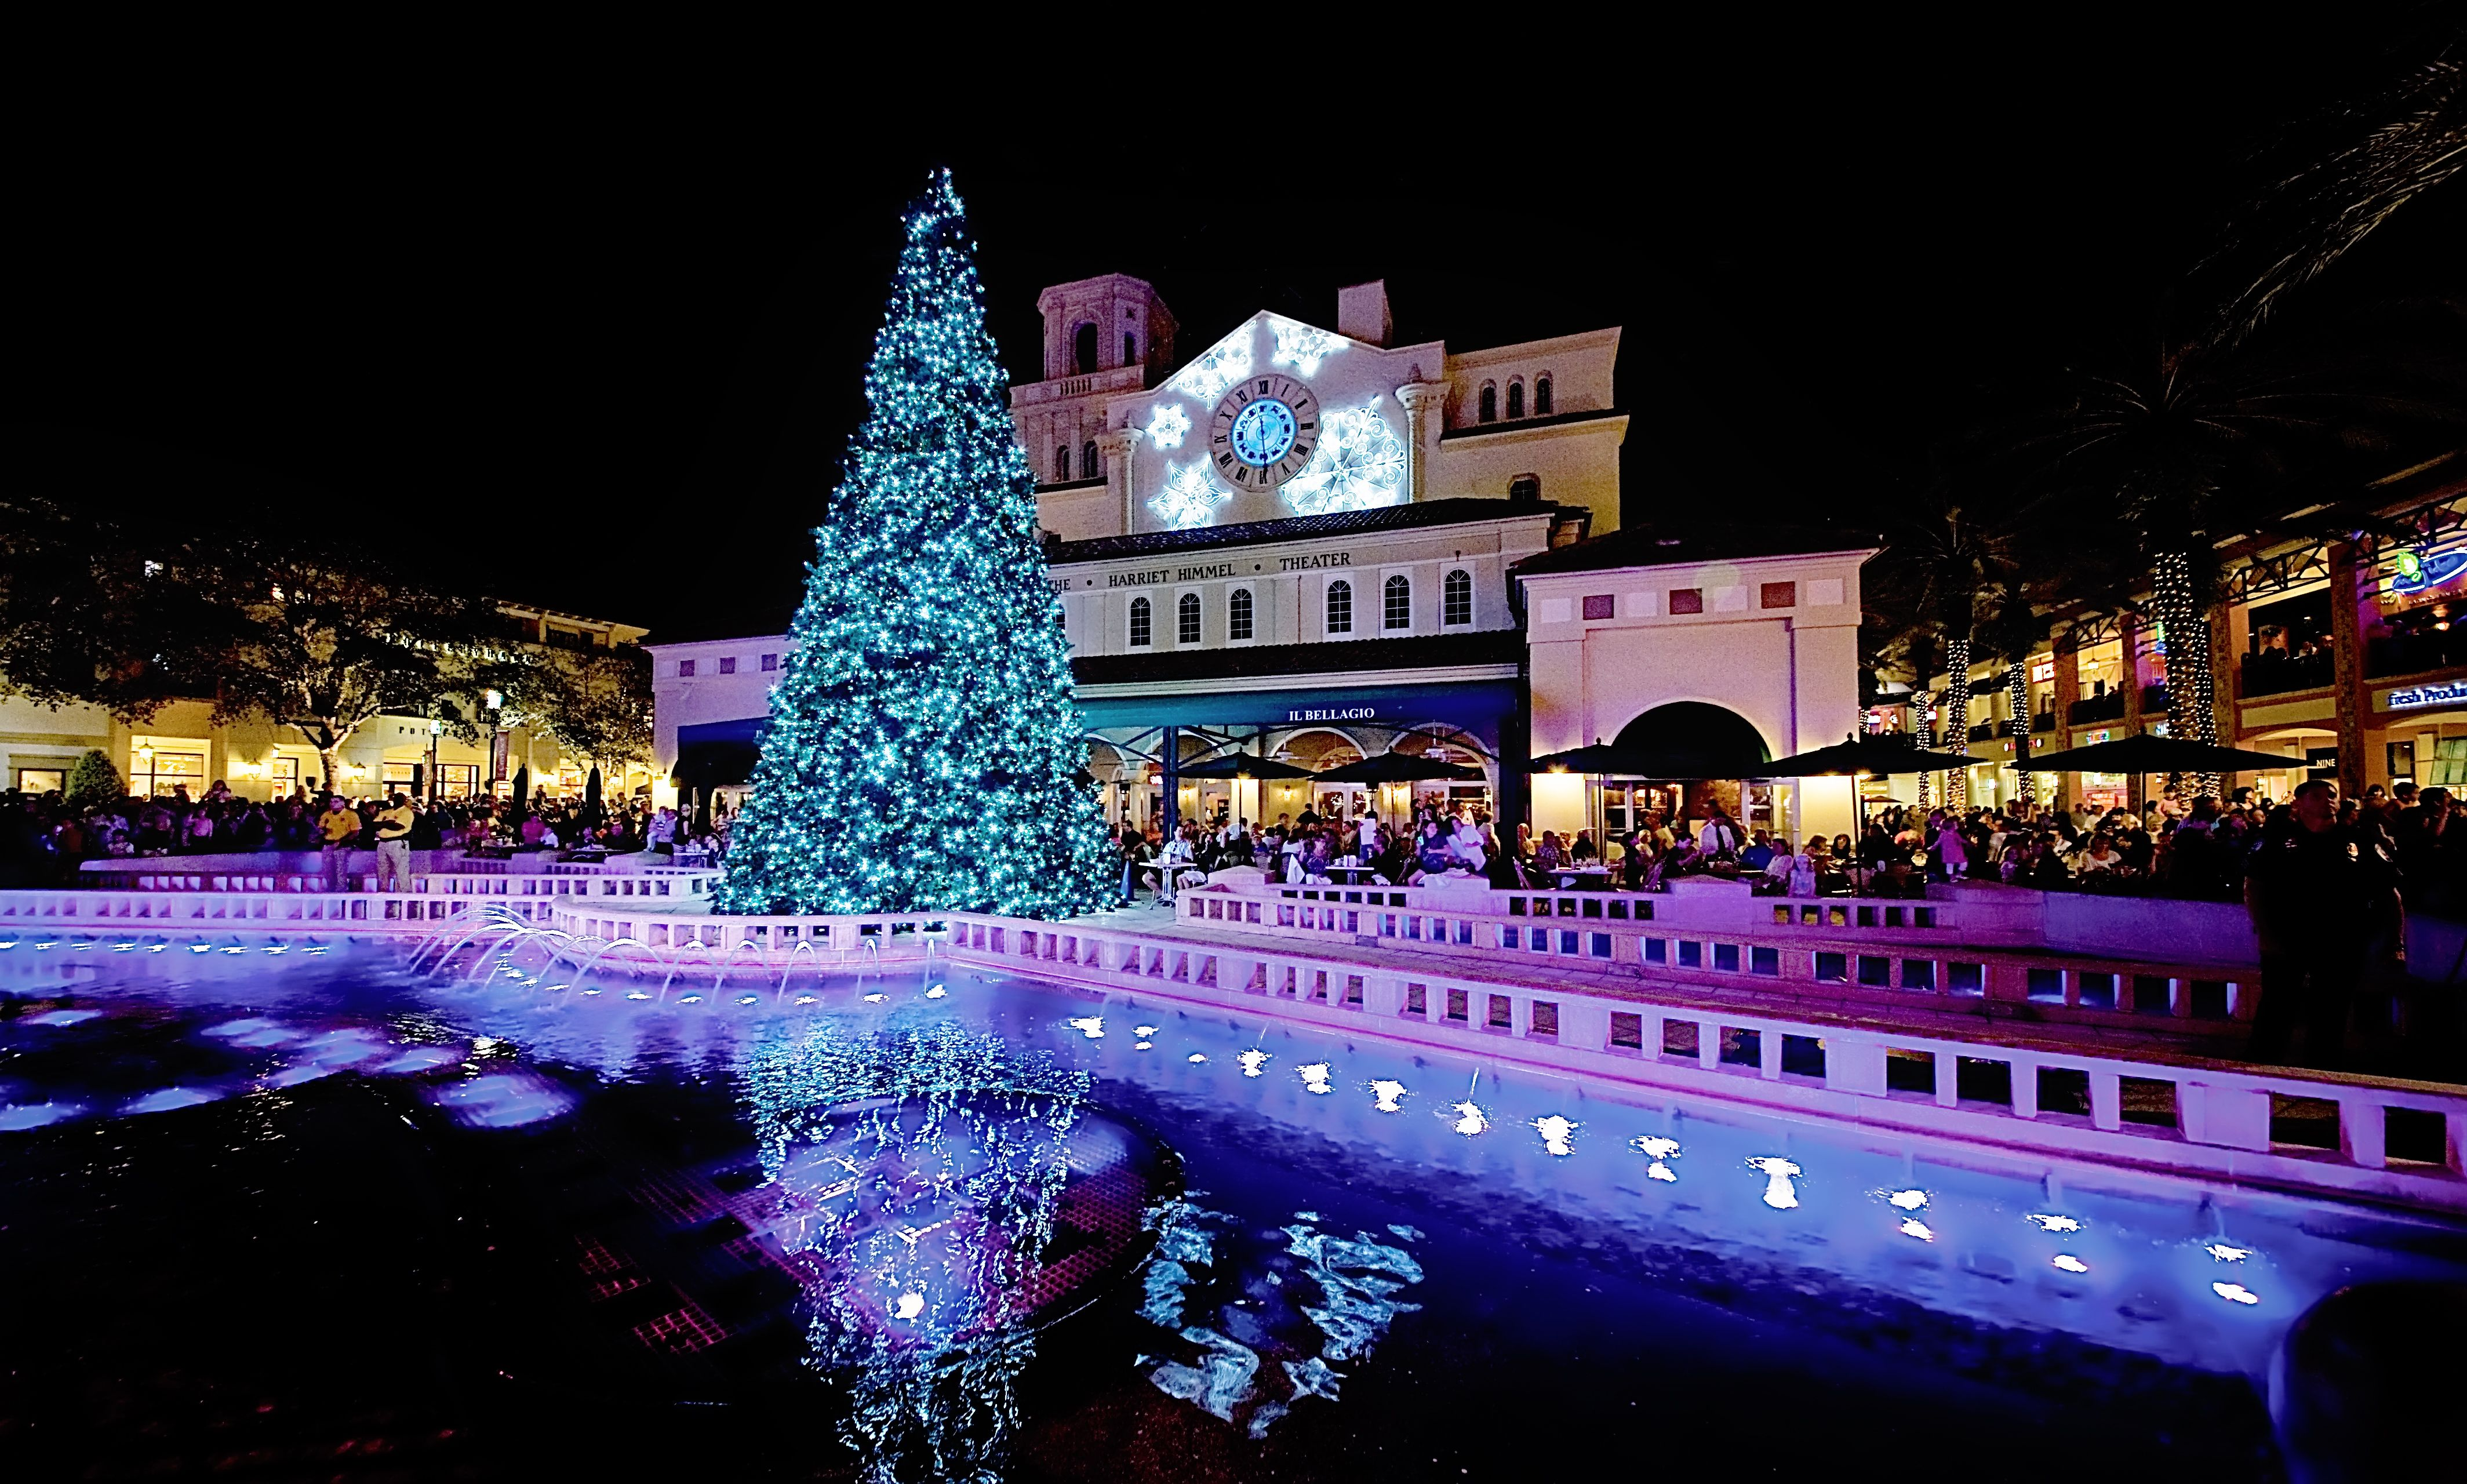 City Place transforms in to a Winter wonderland. @CityPlace #PalmBeaches #Florida #Holiday